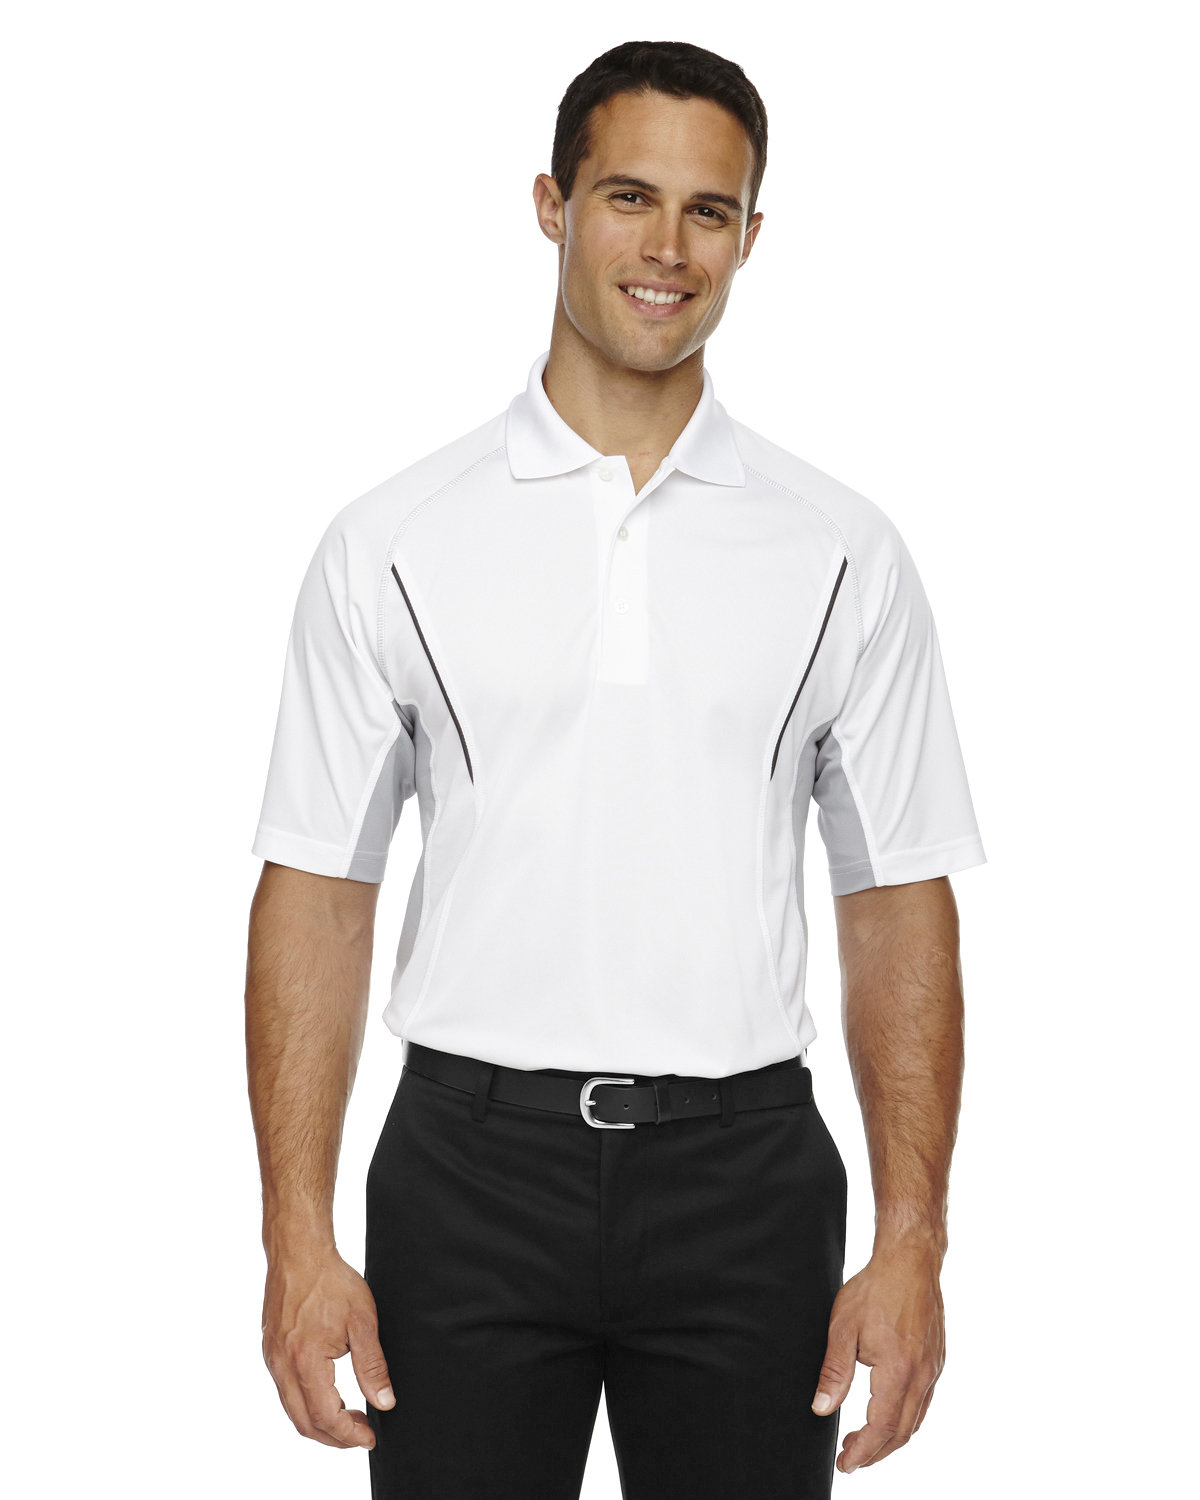 Extreme Men's Eperformance™ Parallel Snag Protection Polo with Piping WHITE